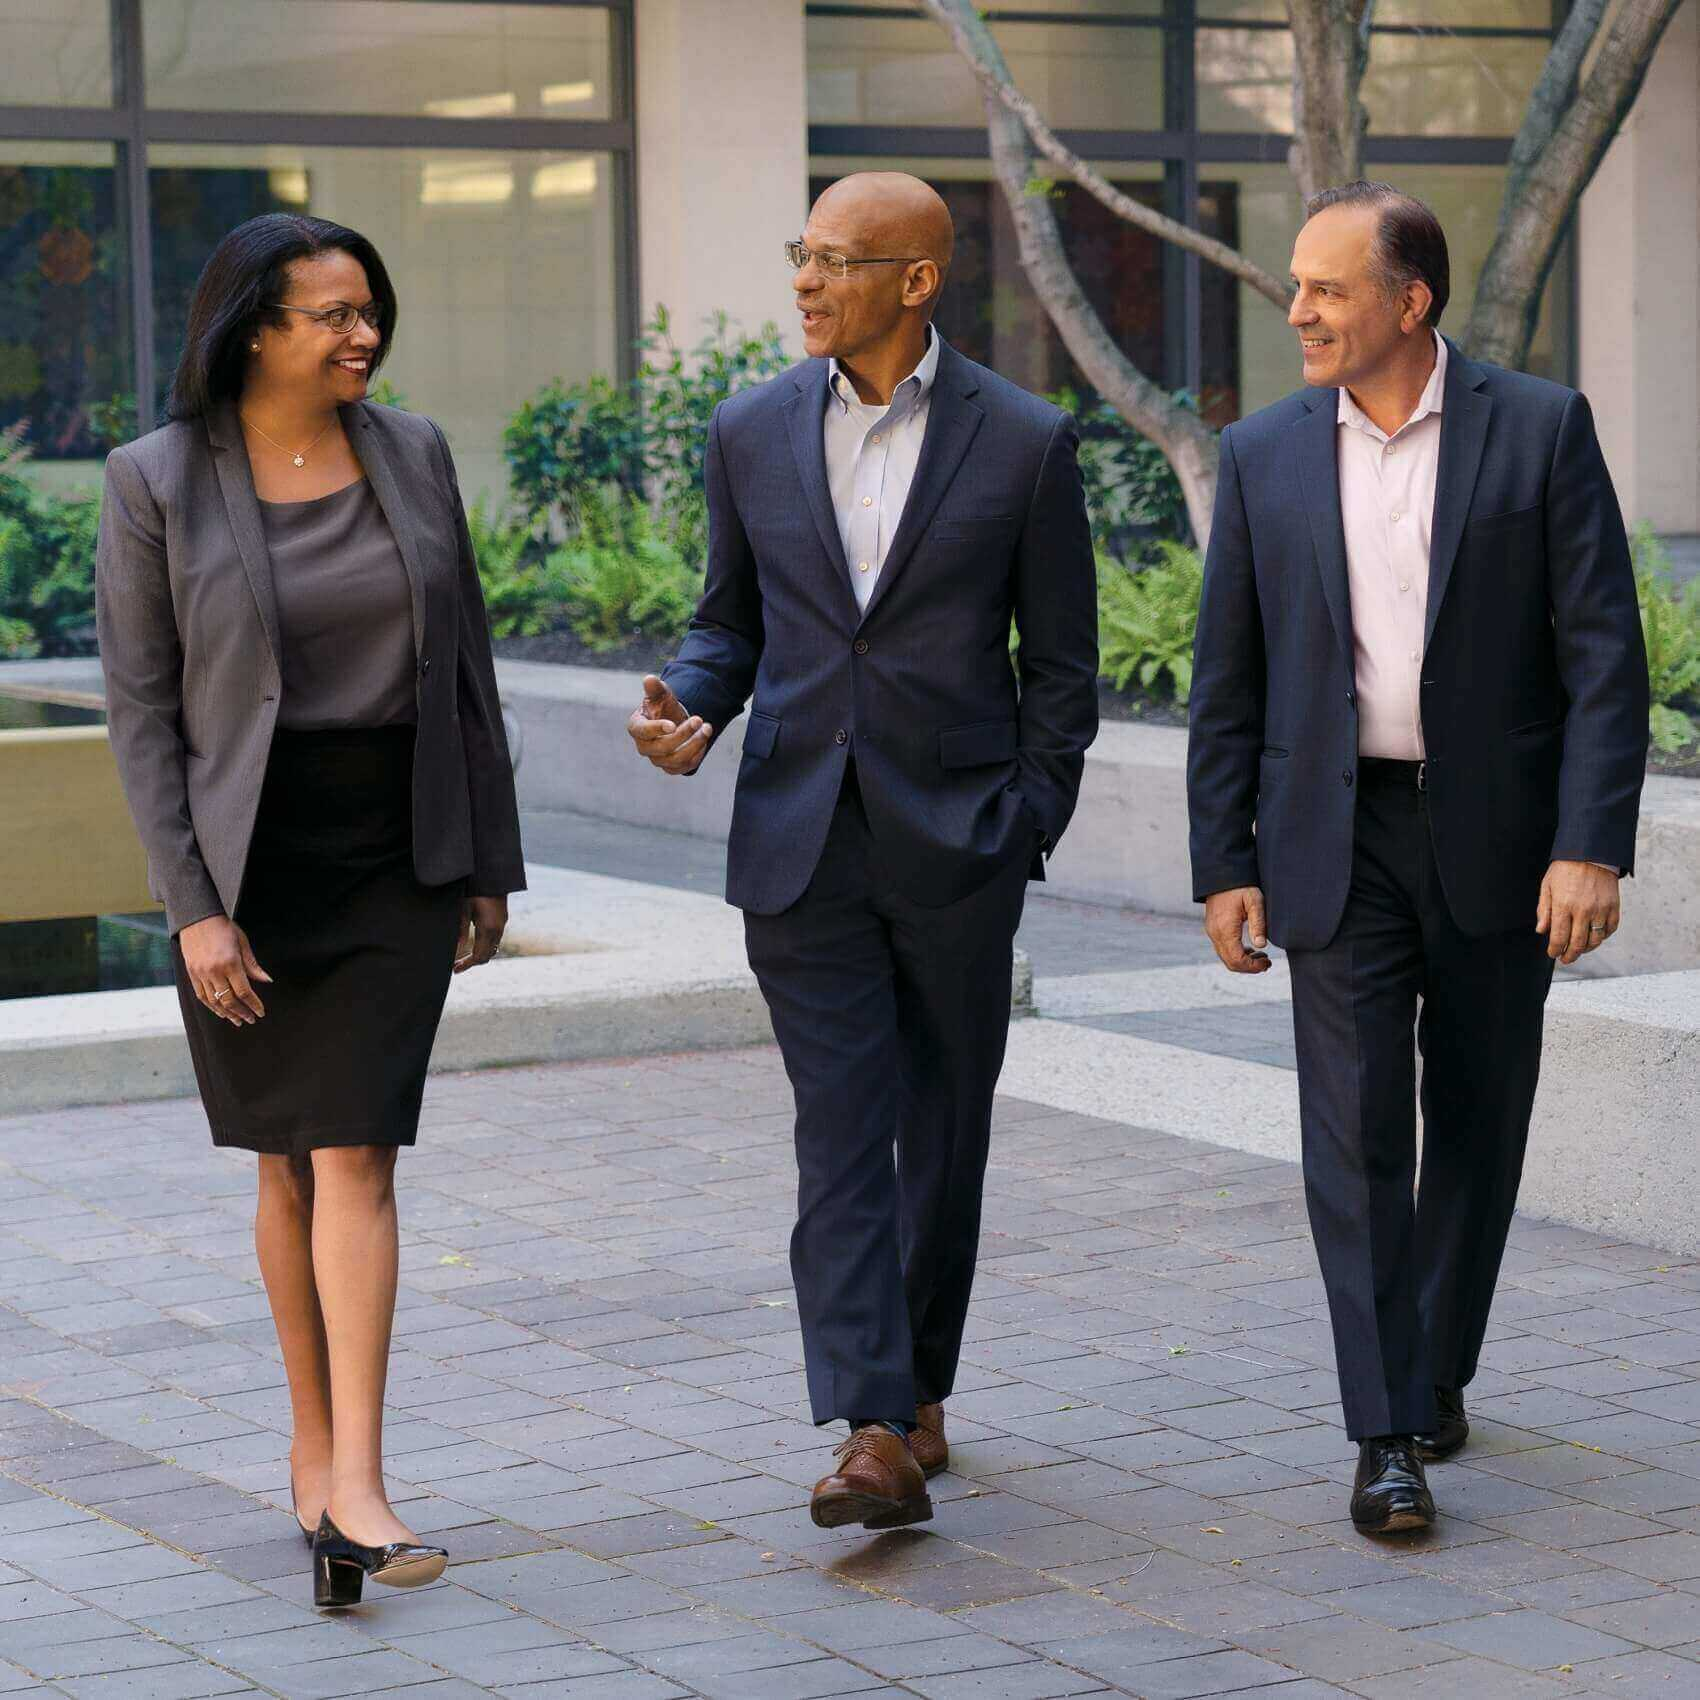 Chevron's Global HR Leaders on Diversity and Inclusion